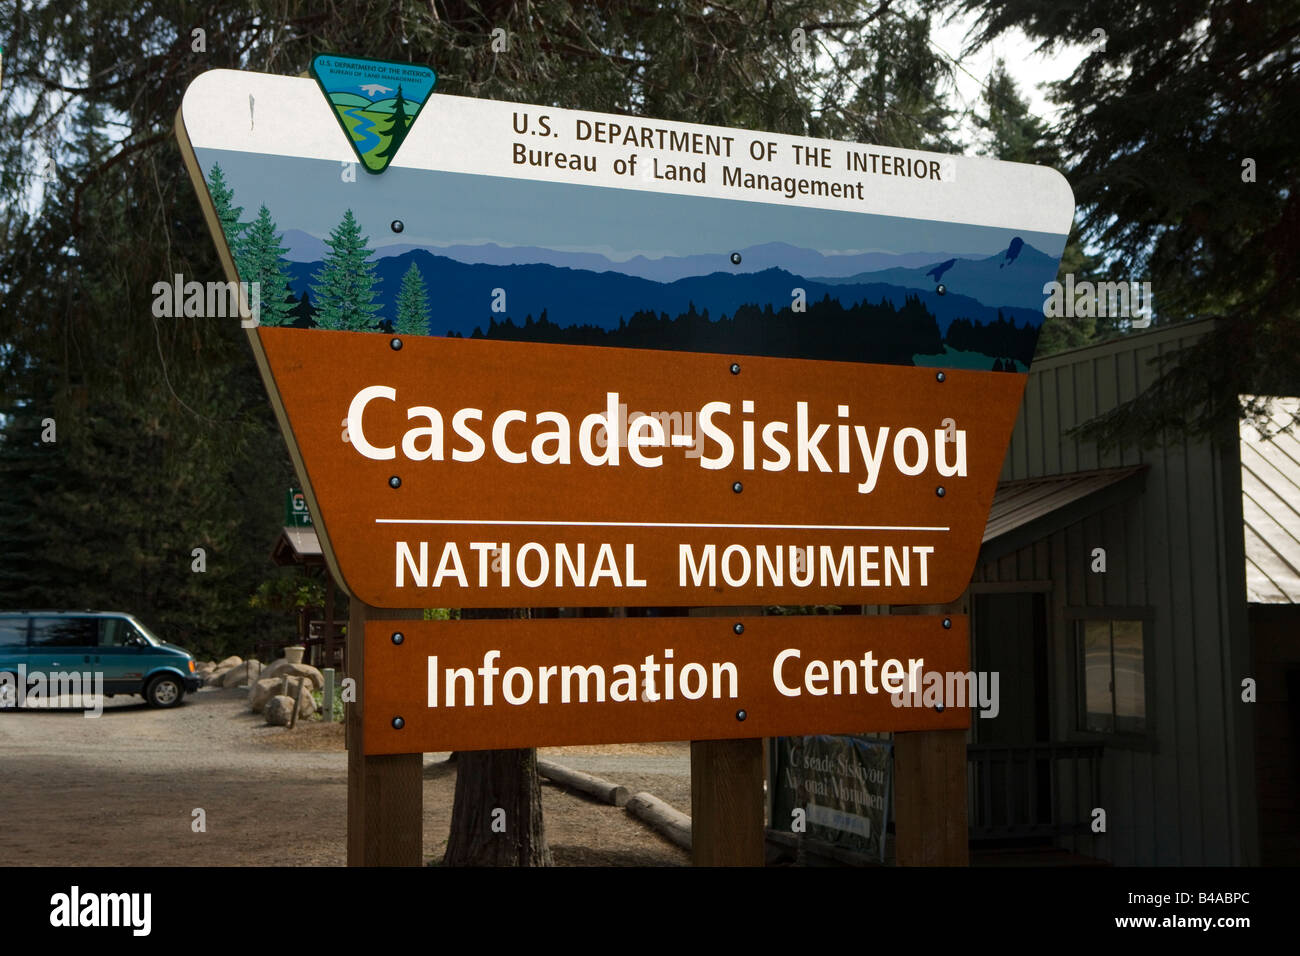 Bureau of Land Management sign for the Cascade-Siskiyou National Monument information center, Green Springs, Oregon - Stock Image